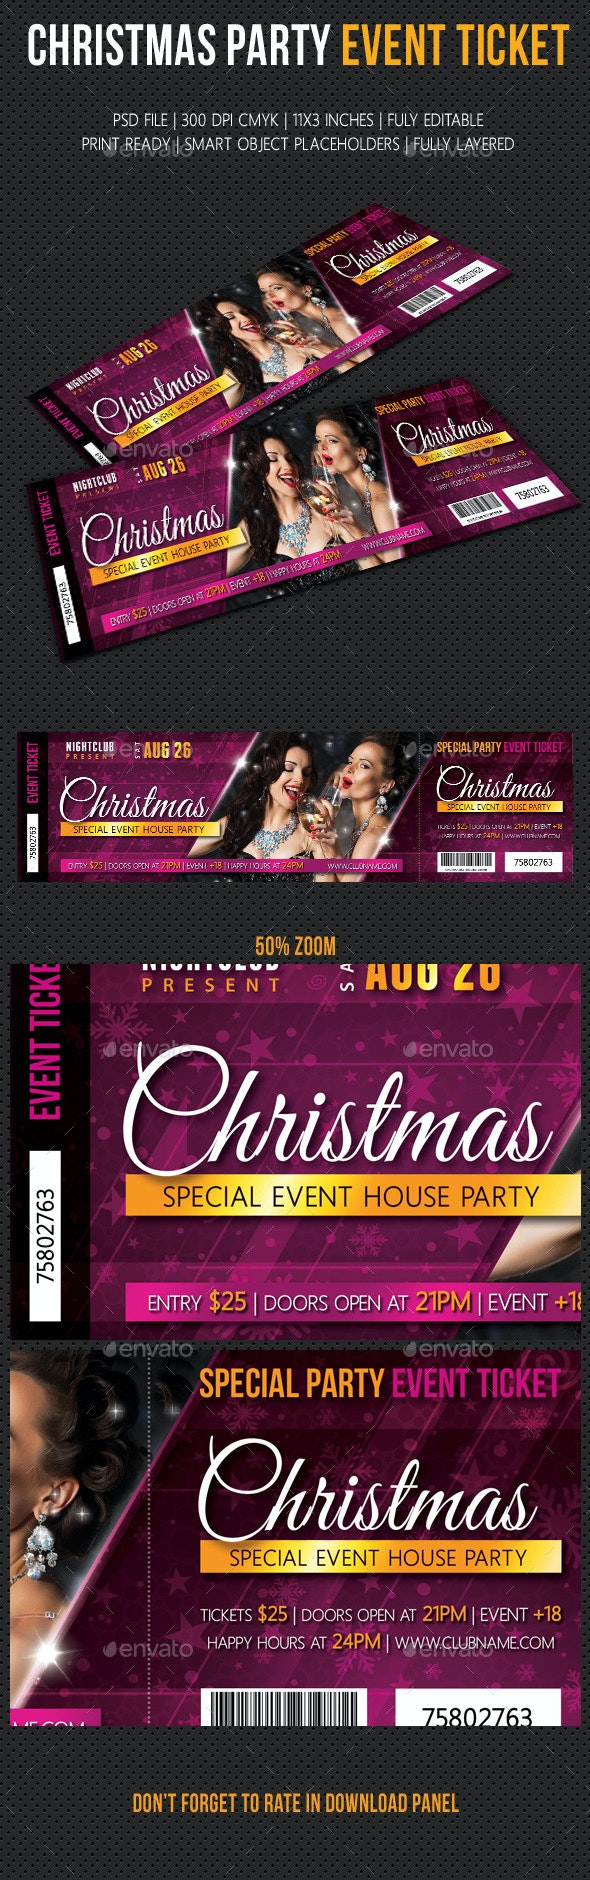 Christmas Party Event Ticket - Cards & Invites Print Templates